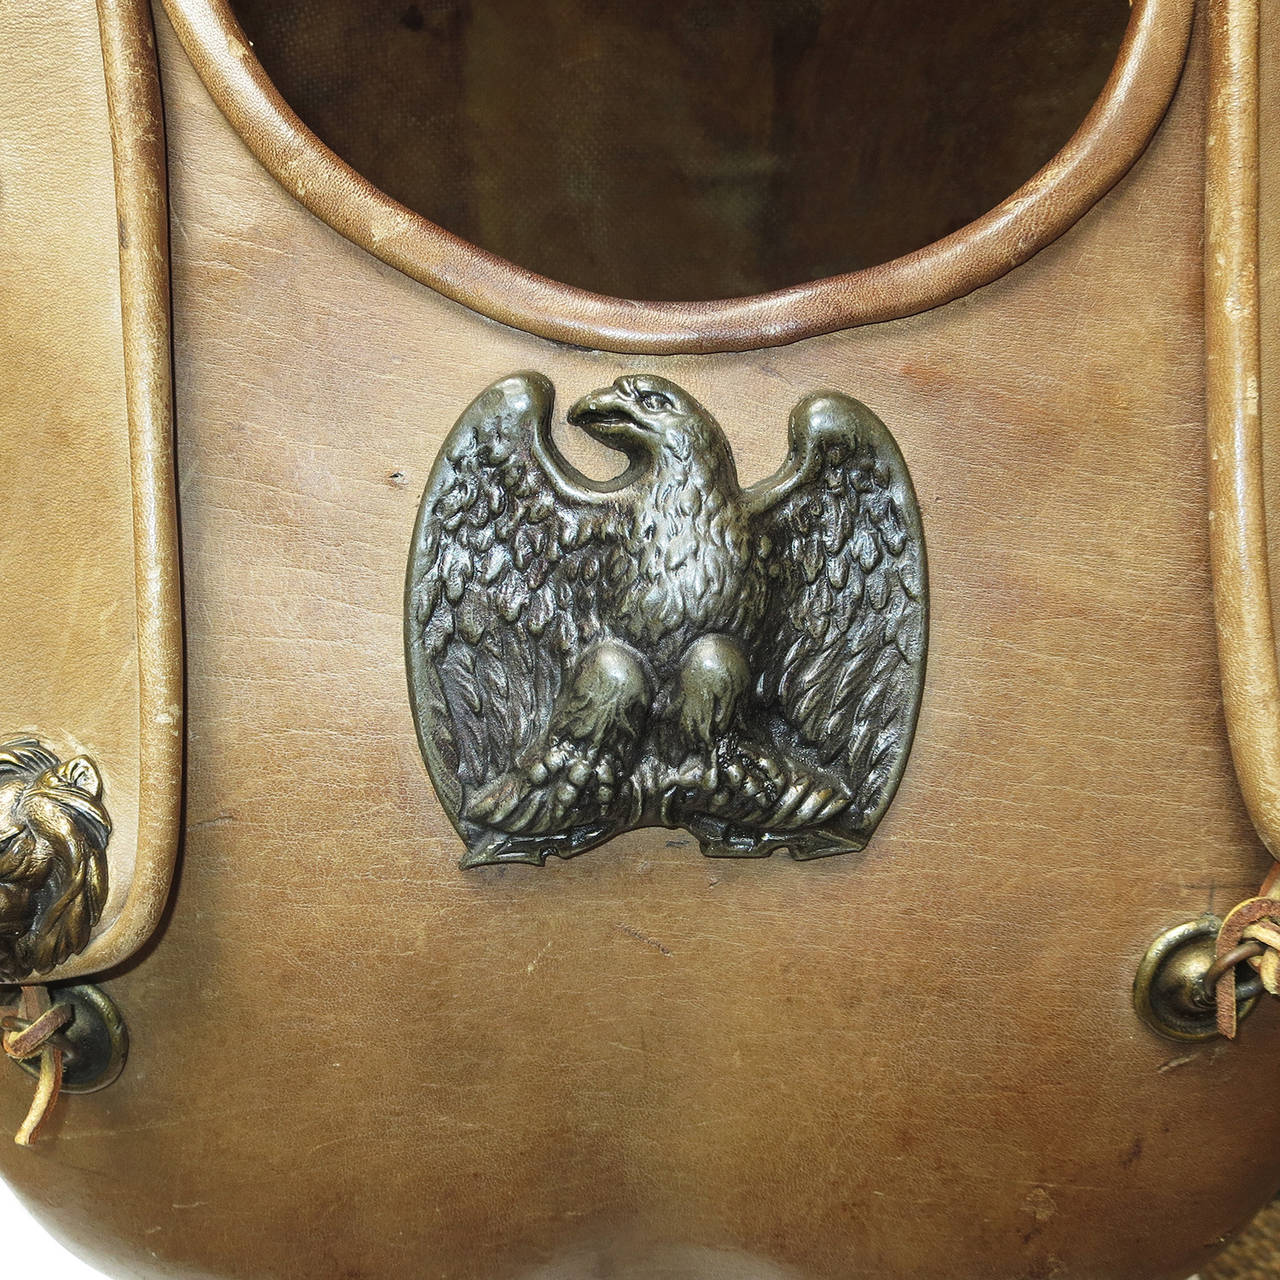 Telly Savalas Leather Chest Plate Prop from